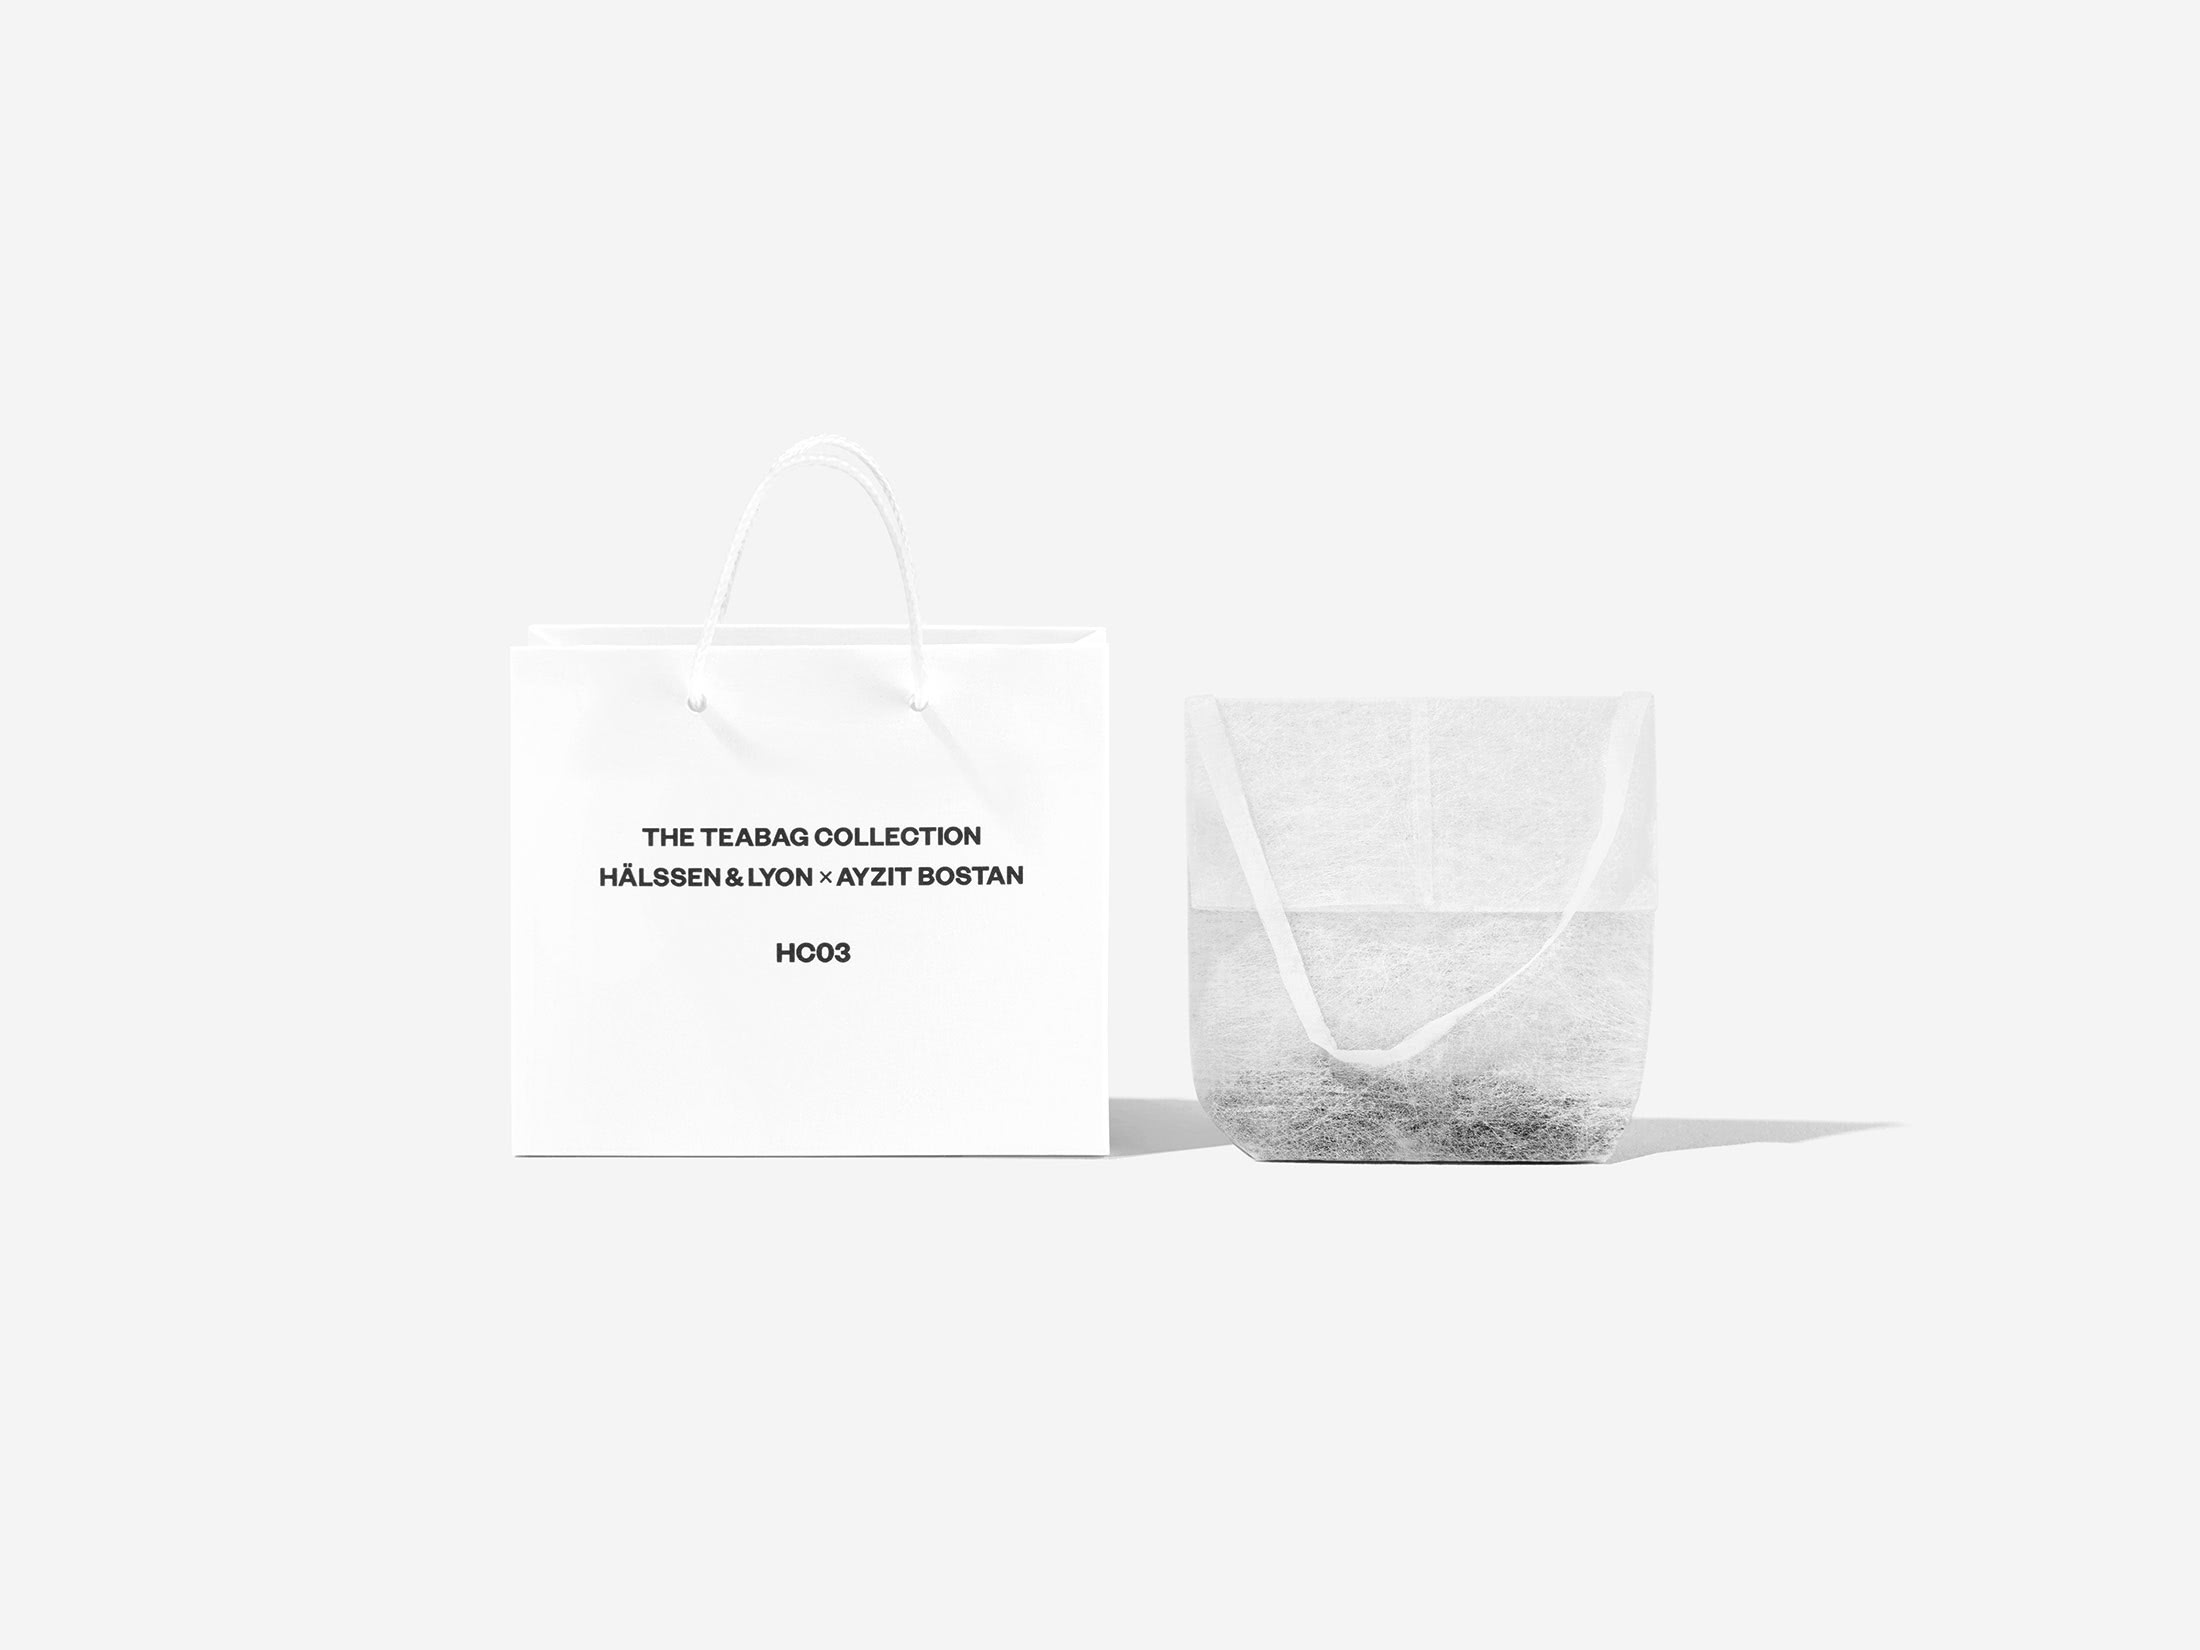 Teabag_Collection_05-Mitja_Schneehage